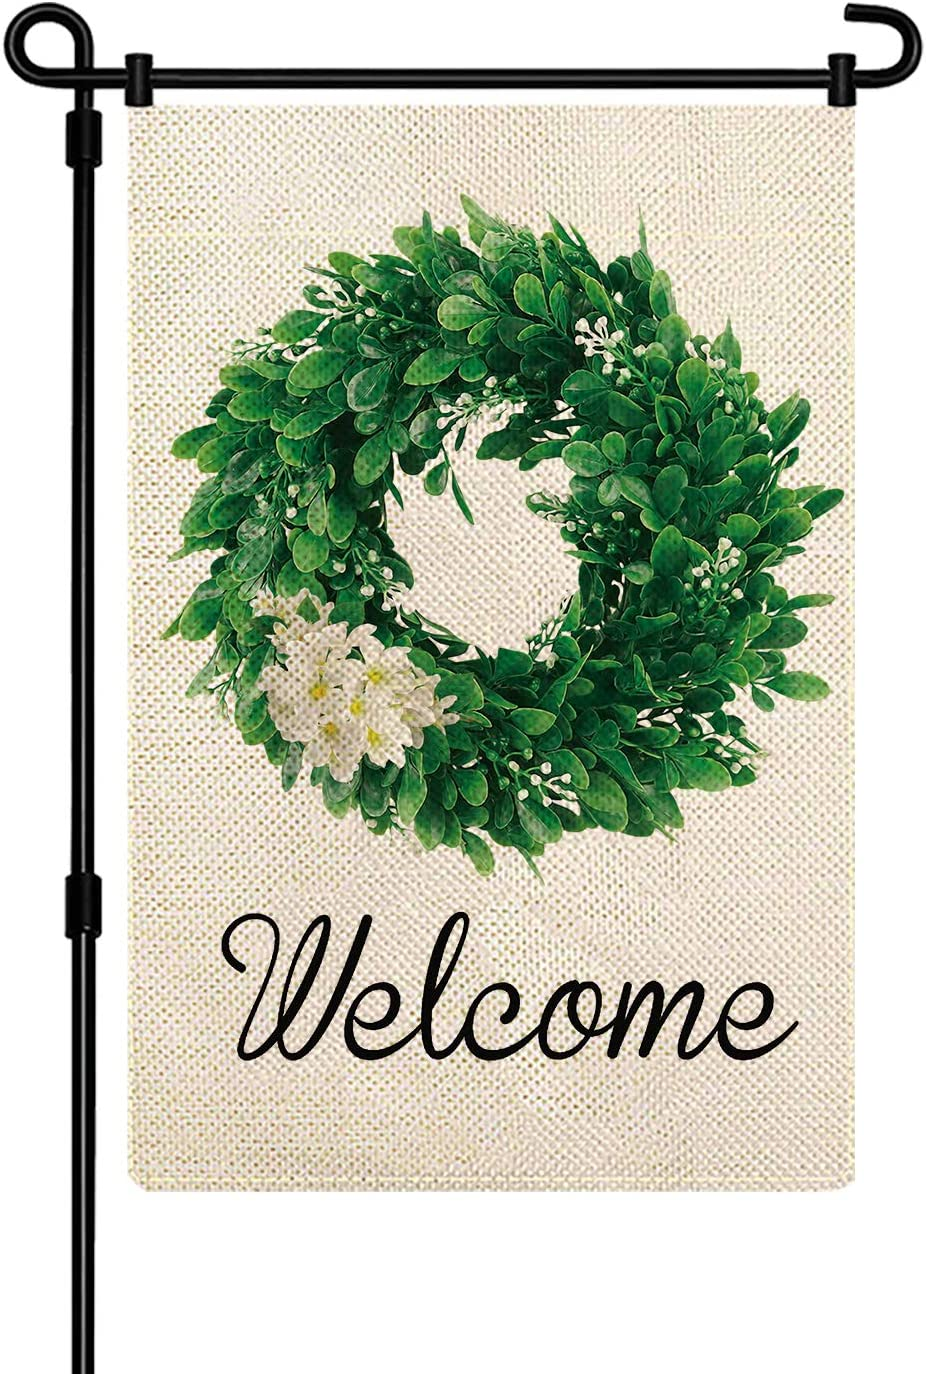 MENORCA Welcome WreathDouble Sided Garden Flag Set Outdoor 12x18 for All Seasons Home Lawn Decorations. BurlapWelcome Yard Flag for Outside, Welcome Yard Flags Set for Every Season